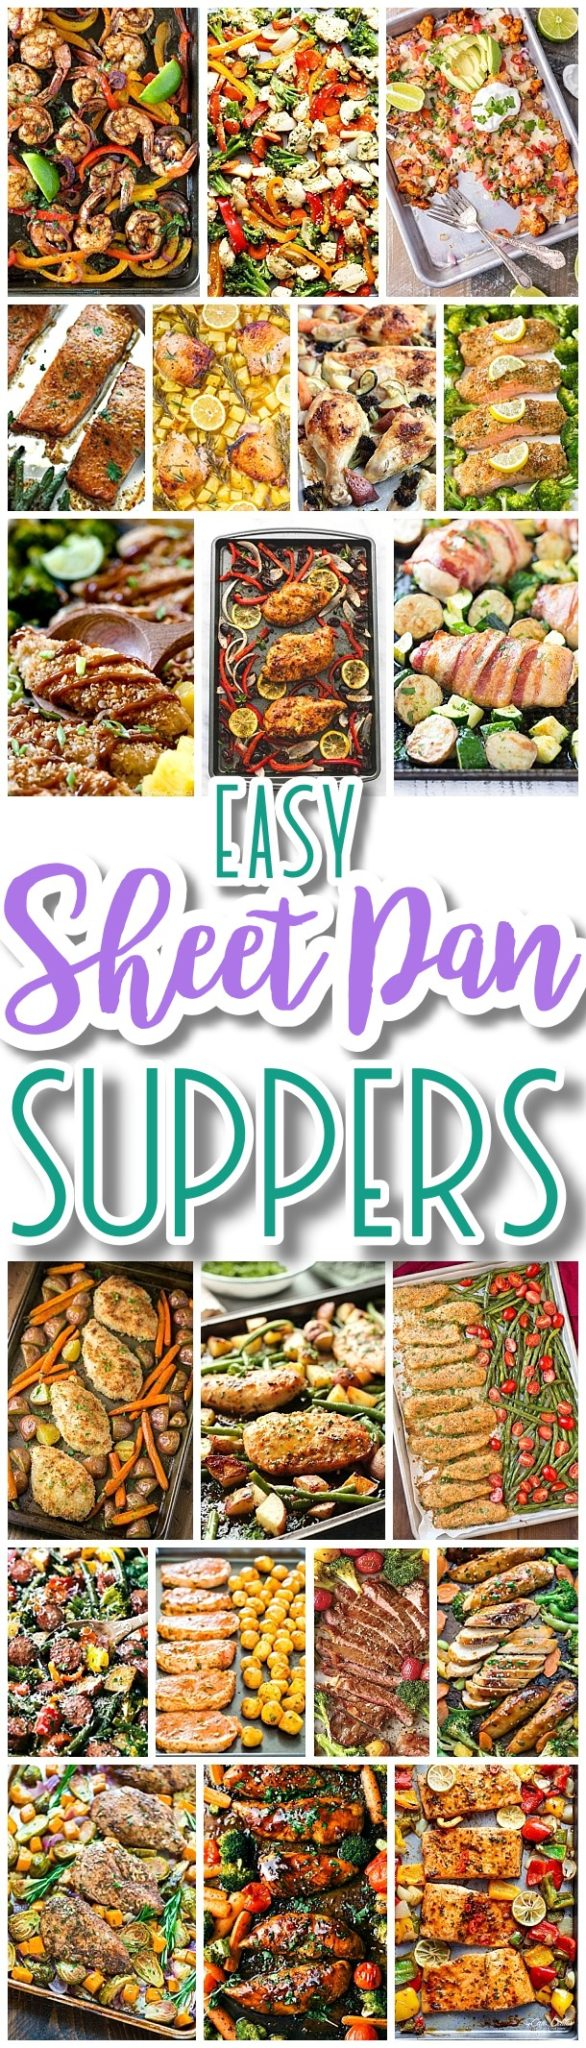 The BEST Sheet Pan Suppers Recipes - Easy and Quick Family Lunch and Simple Dinner Meal Ideas using only ONE baking SHEET PAN - Dreaming in DIY #sheetpansuppers #sheetpanrecipes #sheetpandinners #onepanmeals #healthyrecipes #mealprep #easyrecipes #healthydinners #healthysuppers #healthylunches #simplefamilymeals #simplefamilyrecipes #simplerecipes